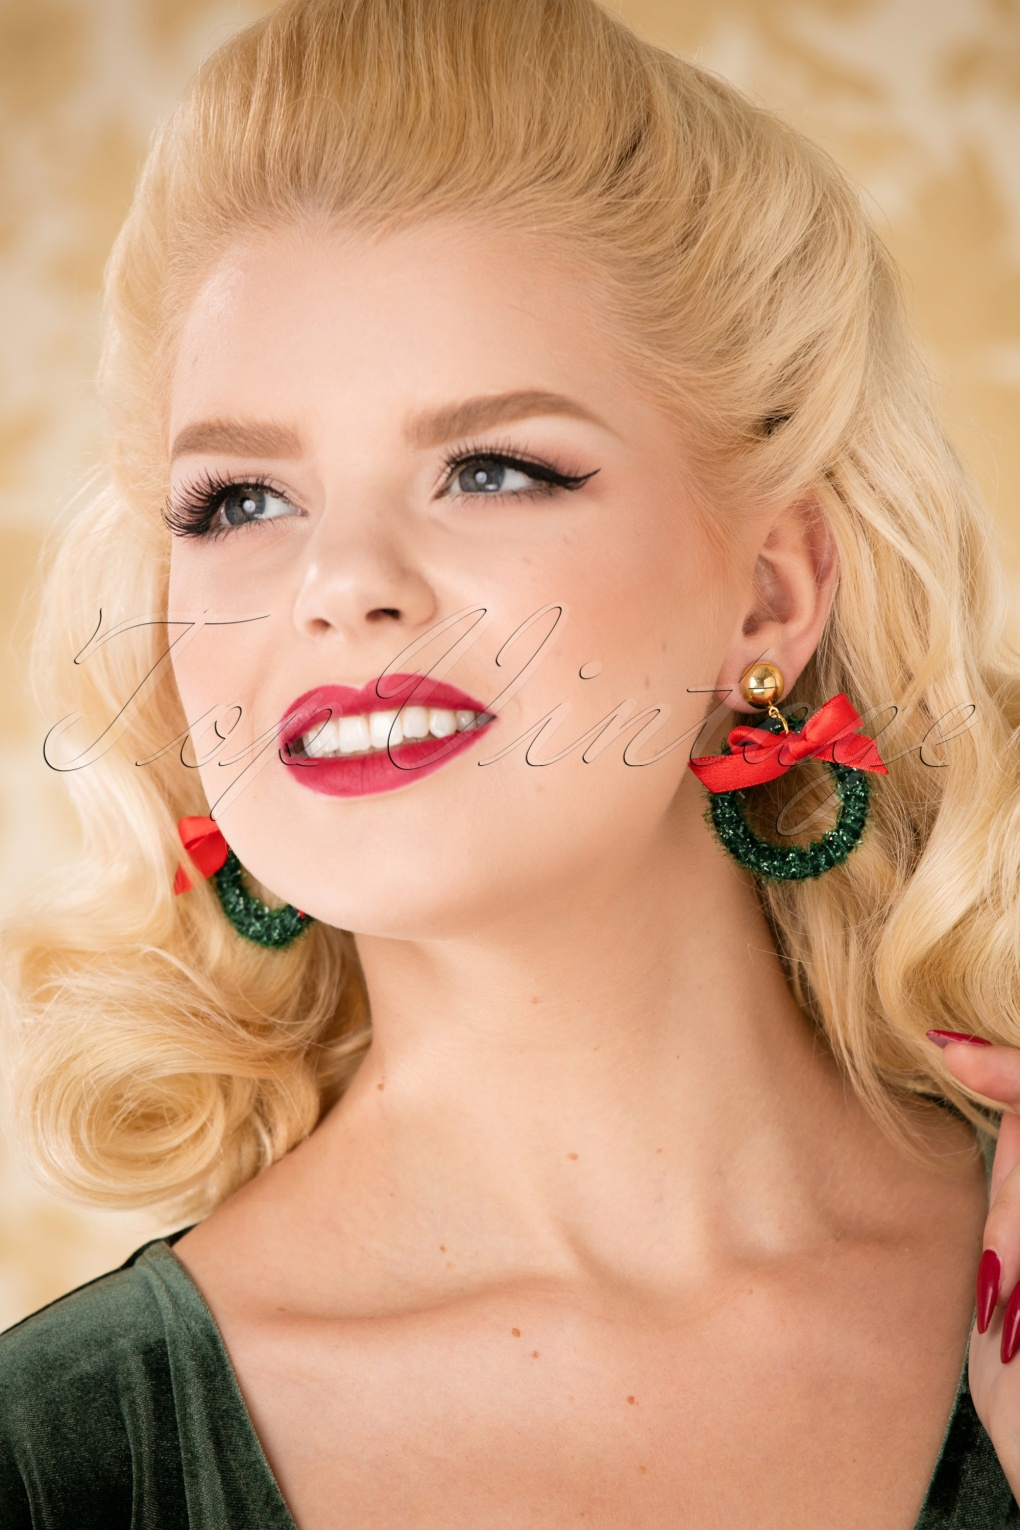 Vintage Style Jewelry, Retro Jewelry 50s Christmas Wreath Earrings in Green £11.54 AT vintagedancer.com